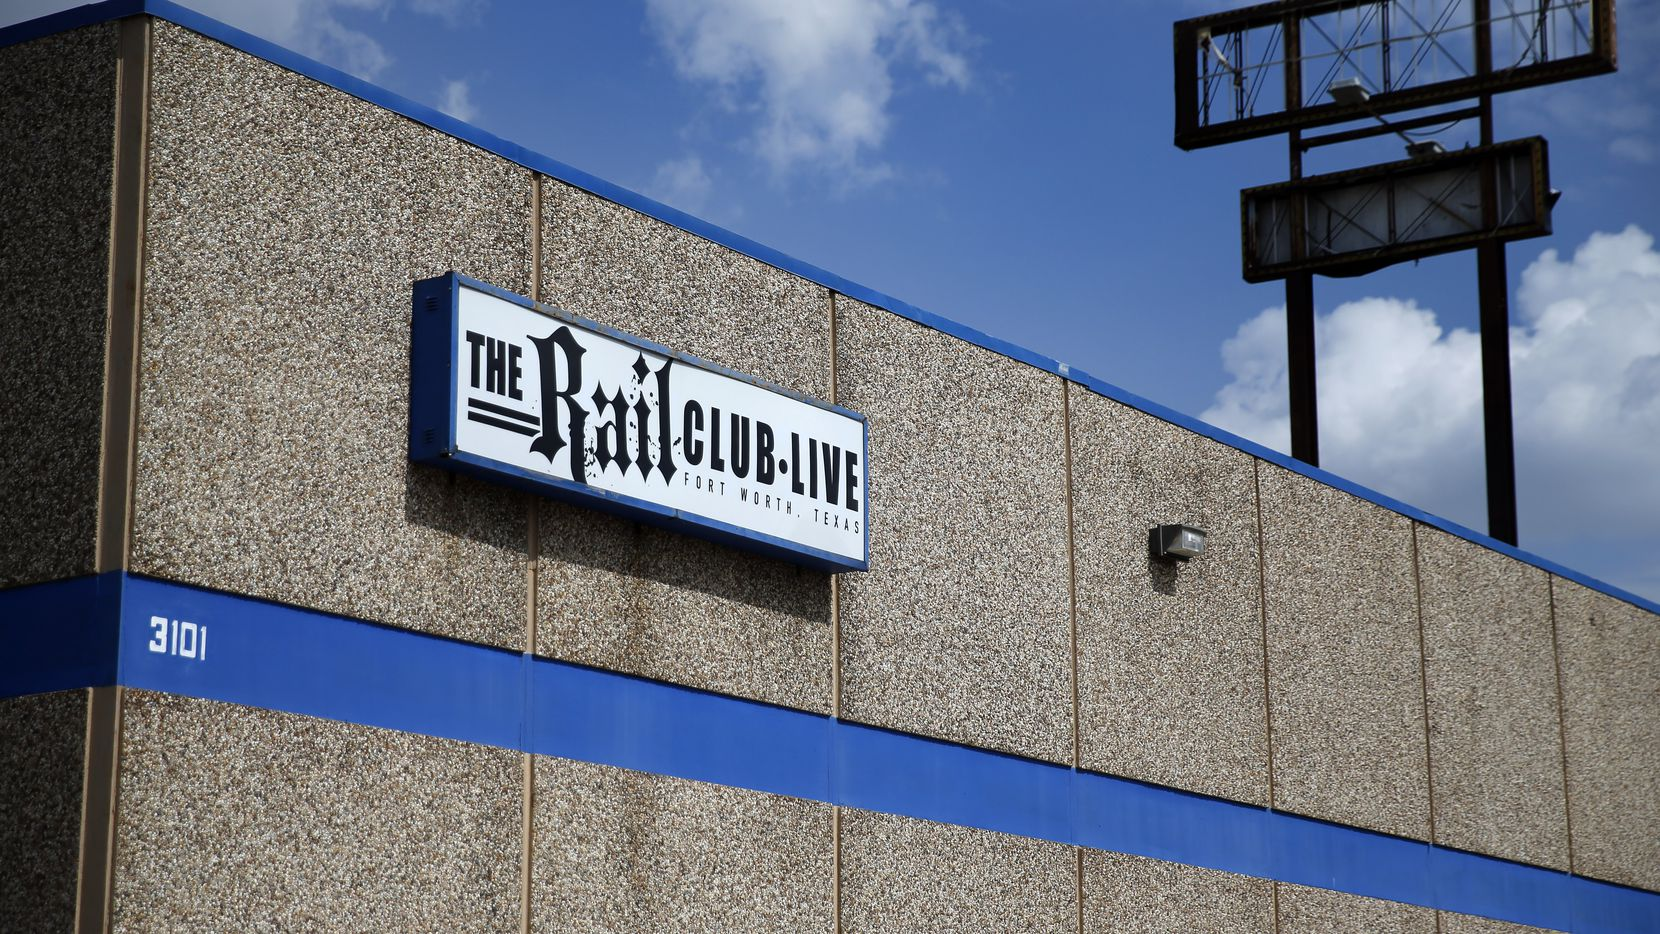 The exterior of the Rail Club Live, a bar and metal music venue in Fort Worth, is pictured on Thursday, July 2, 2020. The venue plans to hold a concert on July 4 dubbed the Rail Club Tea Party, despite Gov. Greg Abbott's order amid the surge in coronavirus cases that Texas bars remain closed.